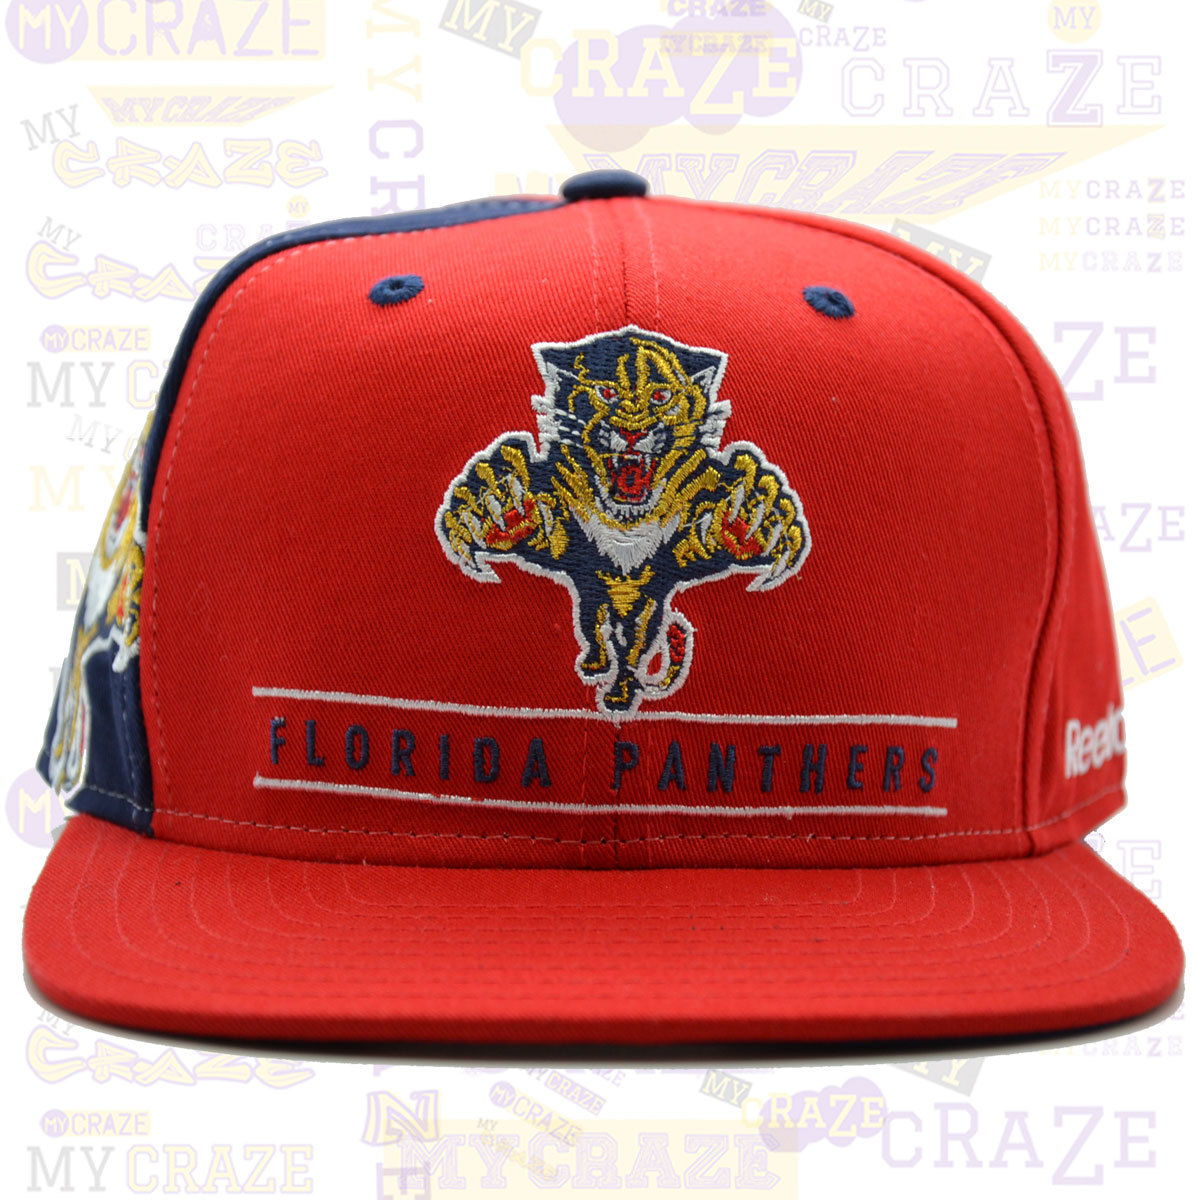 hot sale online fe5cb 2e72b ... uk florida panthers reebok nhl red snapback retro cap mycraze 7a93a  8a200